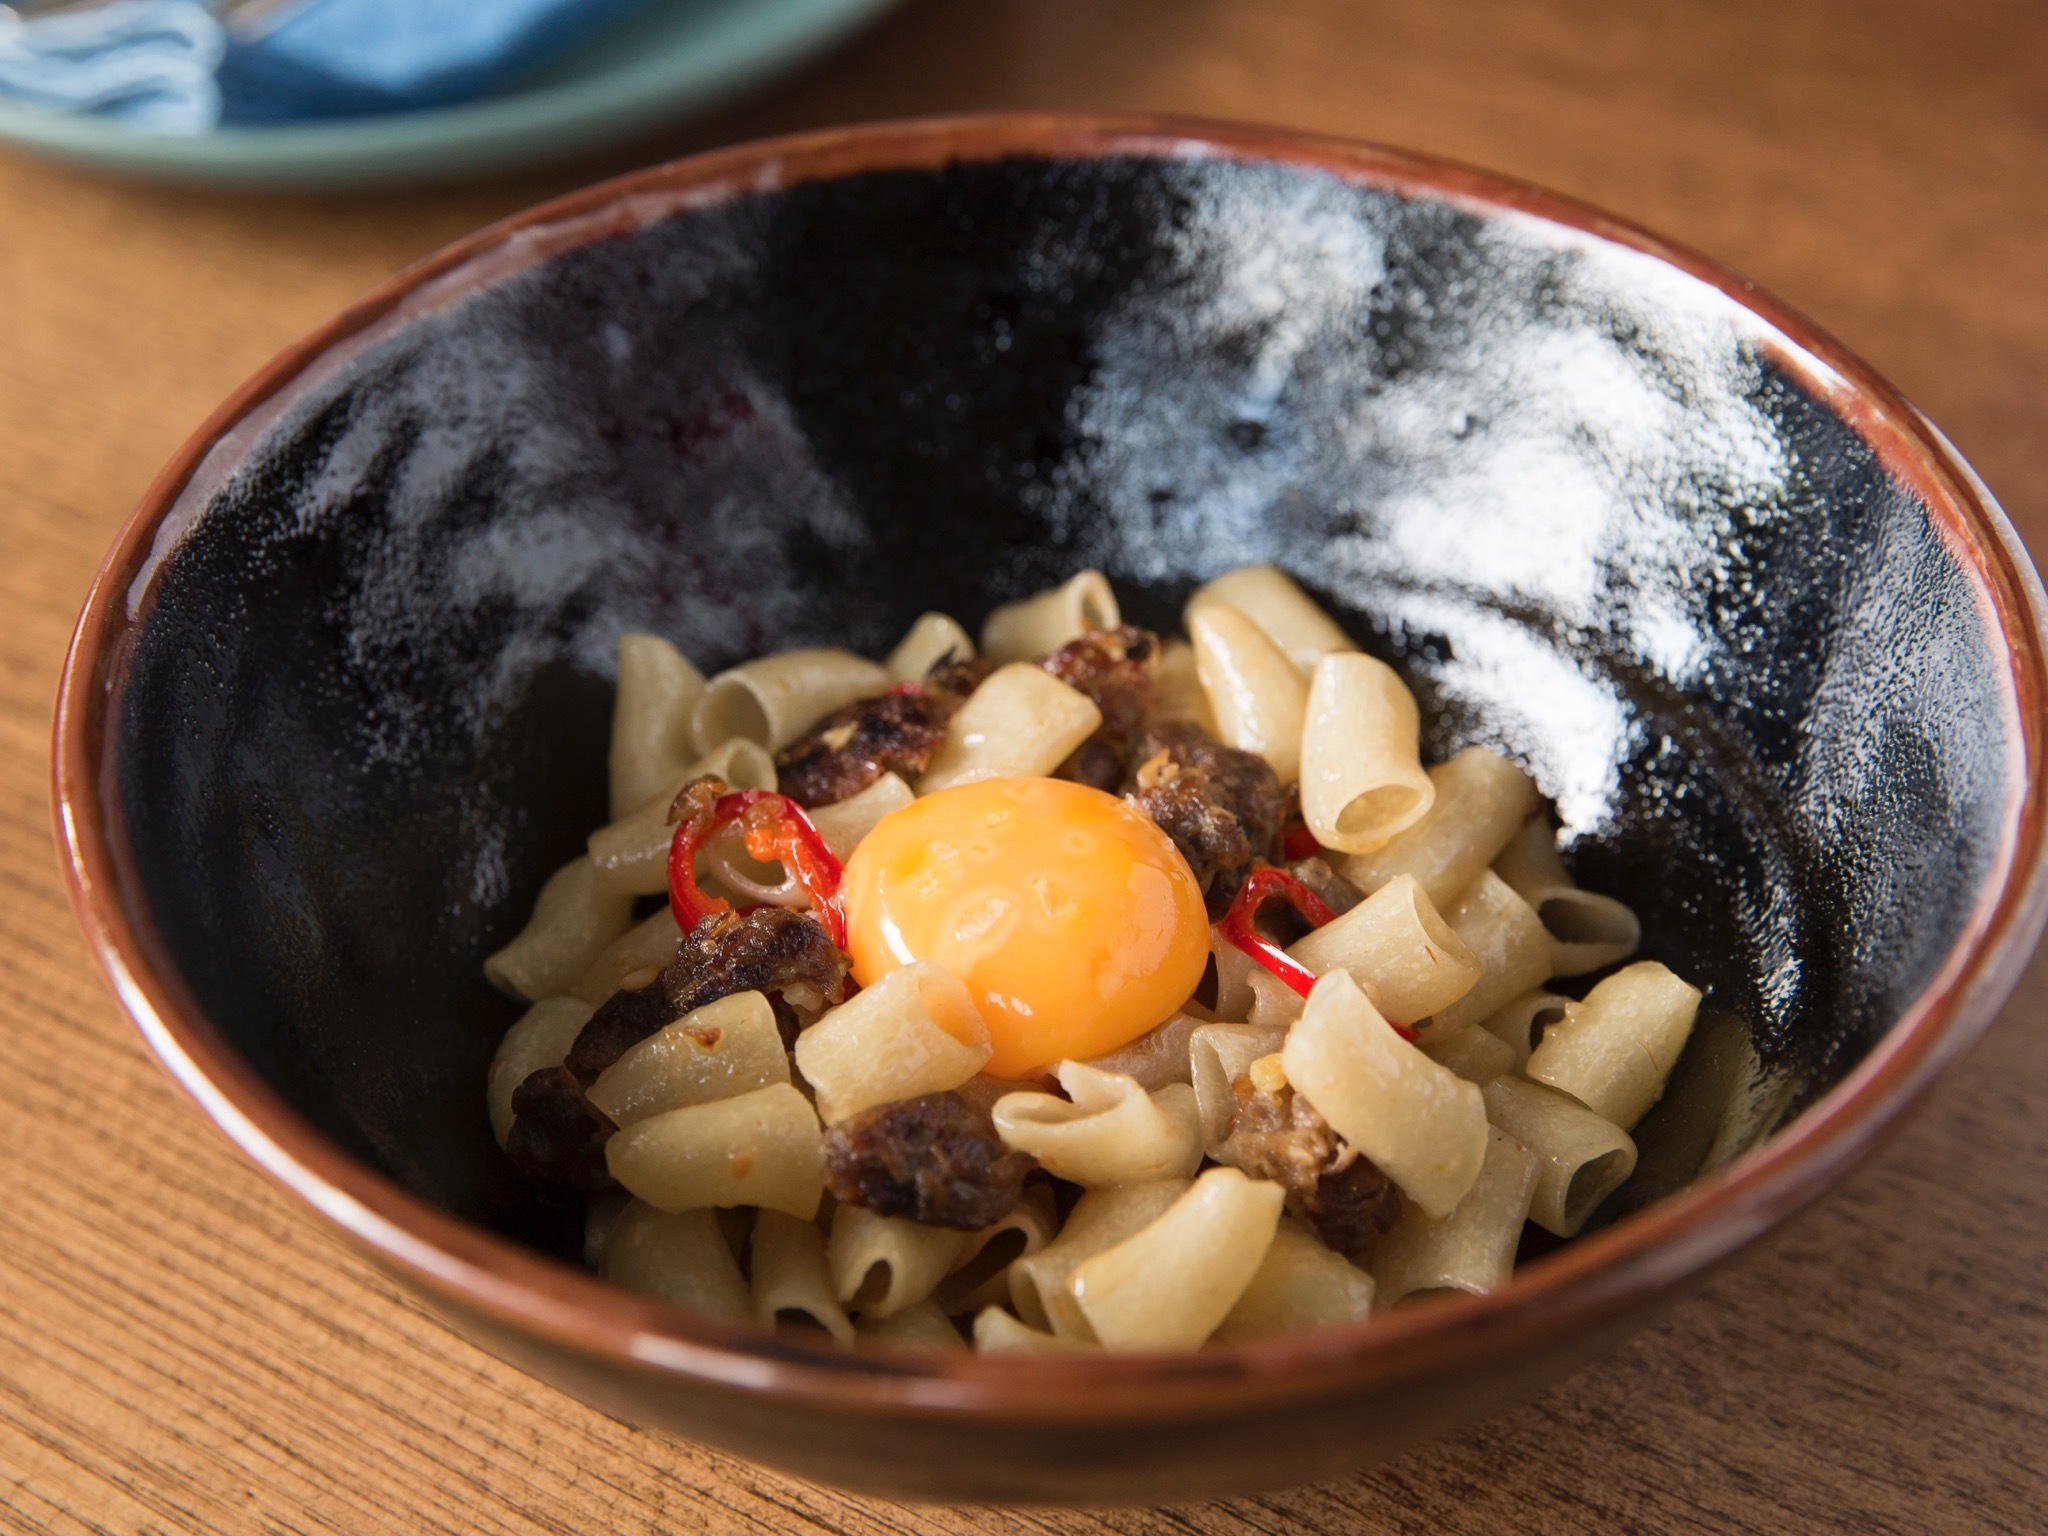 A dish of small tube pasta with slices of chilli and an egg yolk